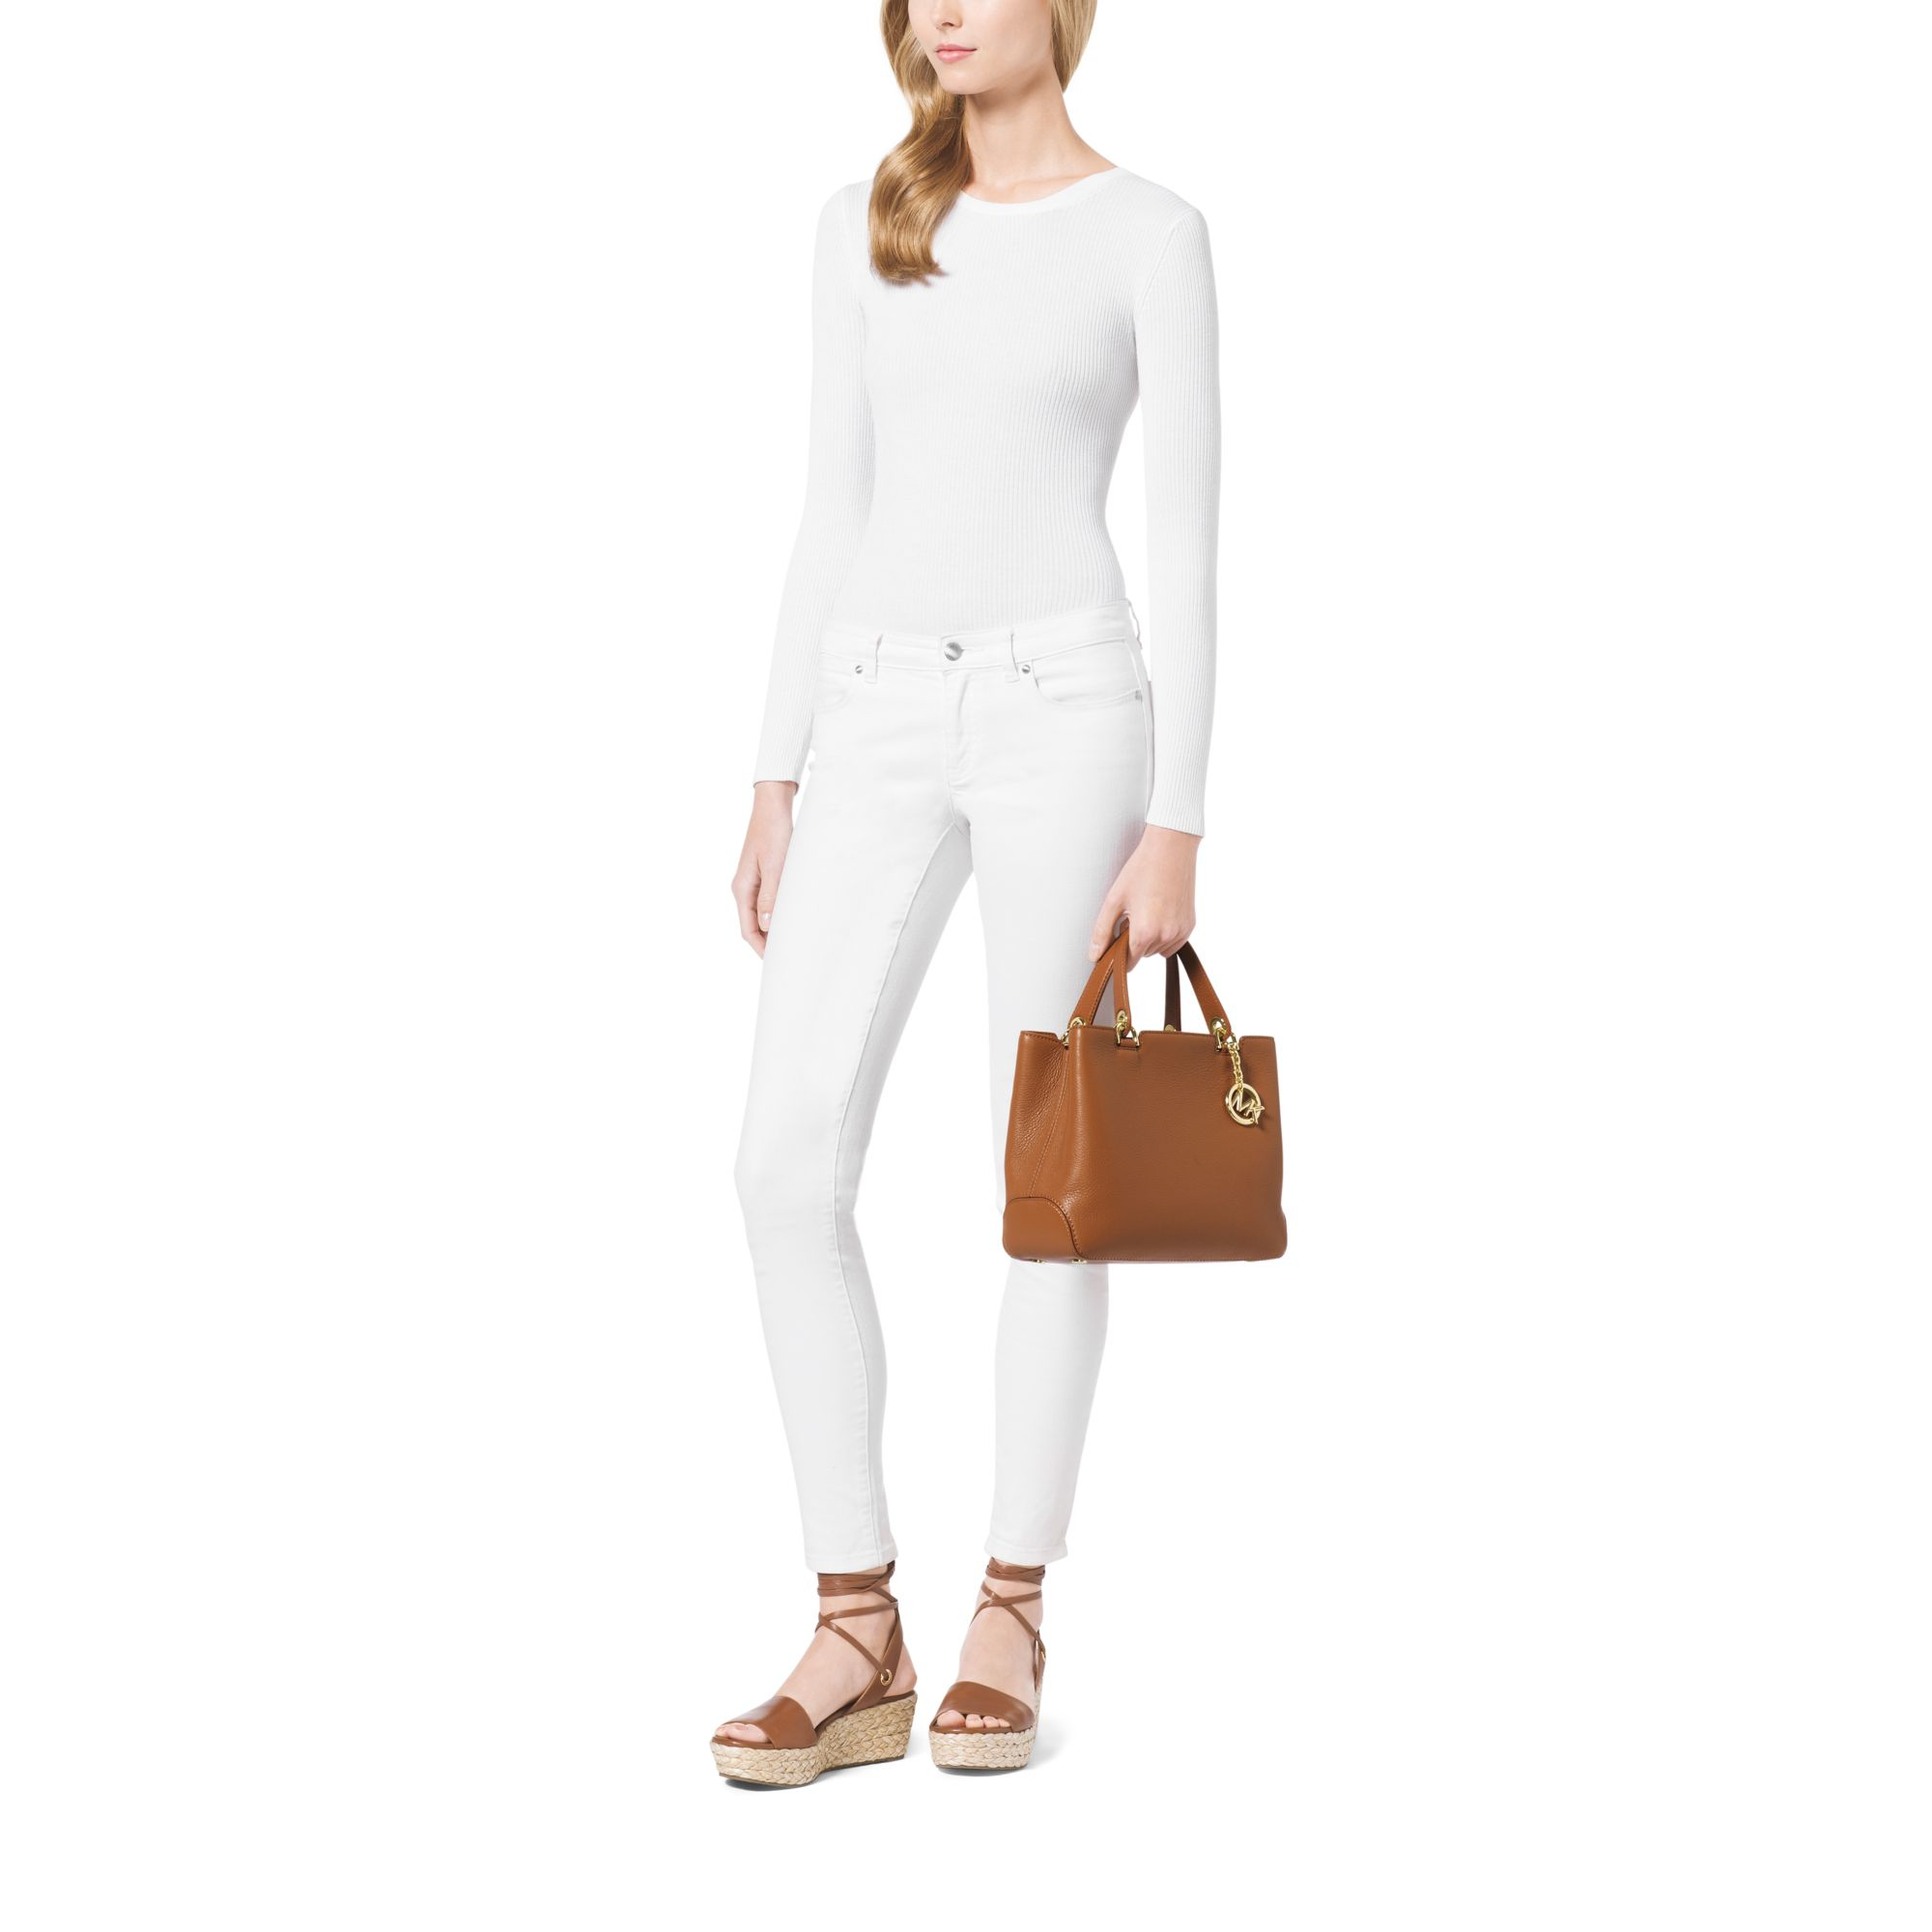 fd8e141e1ce1 Lyst - Michael Kors Anabelle Medium Leather Tote in Brown